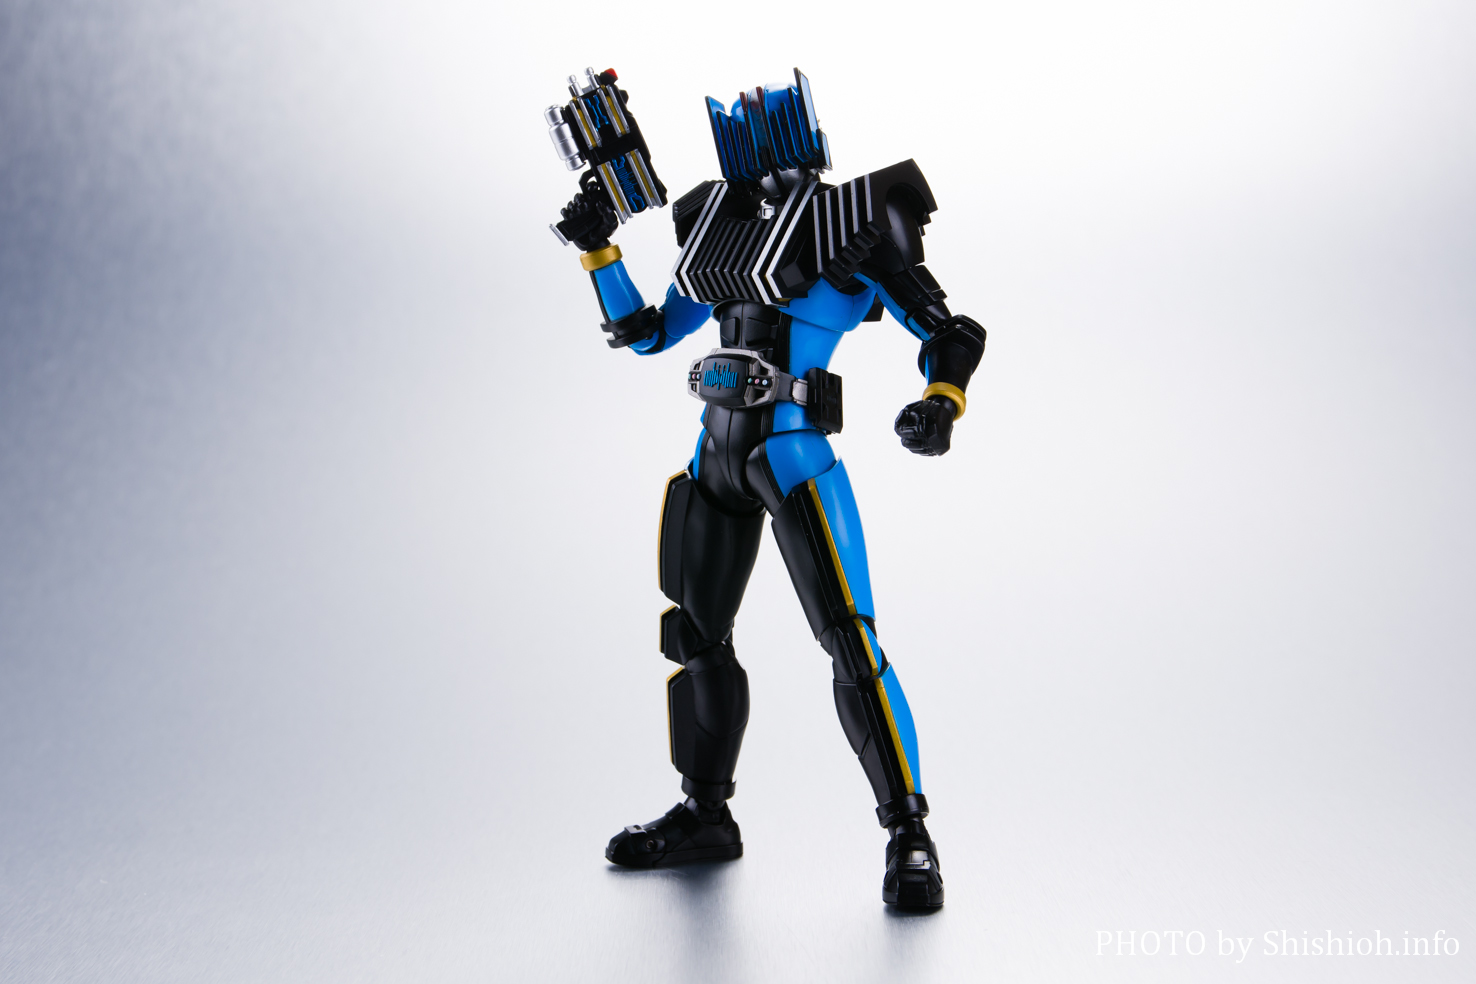 S.H.Figuarts(真骨彫製法) 仮面ライダーディエンド